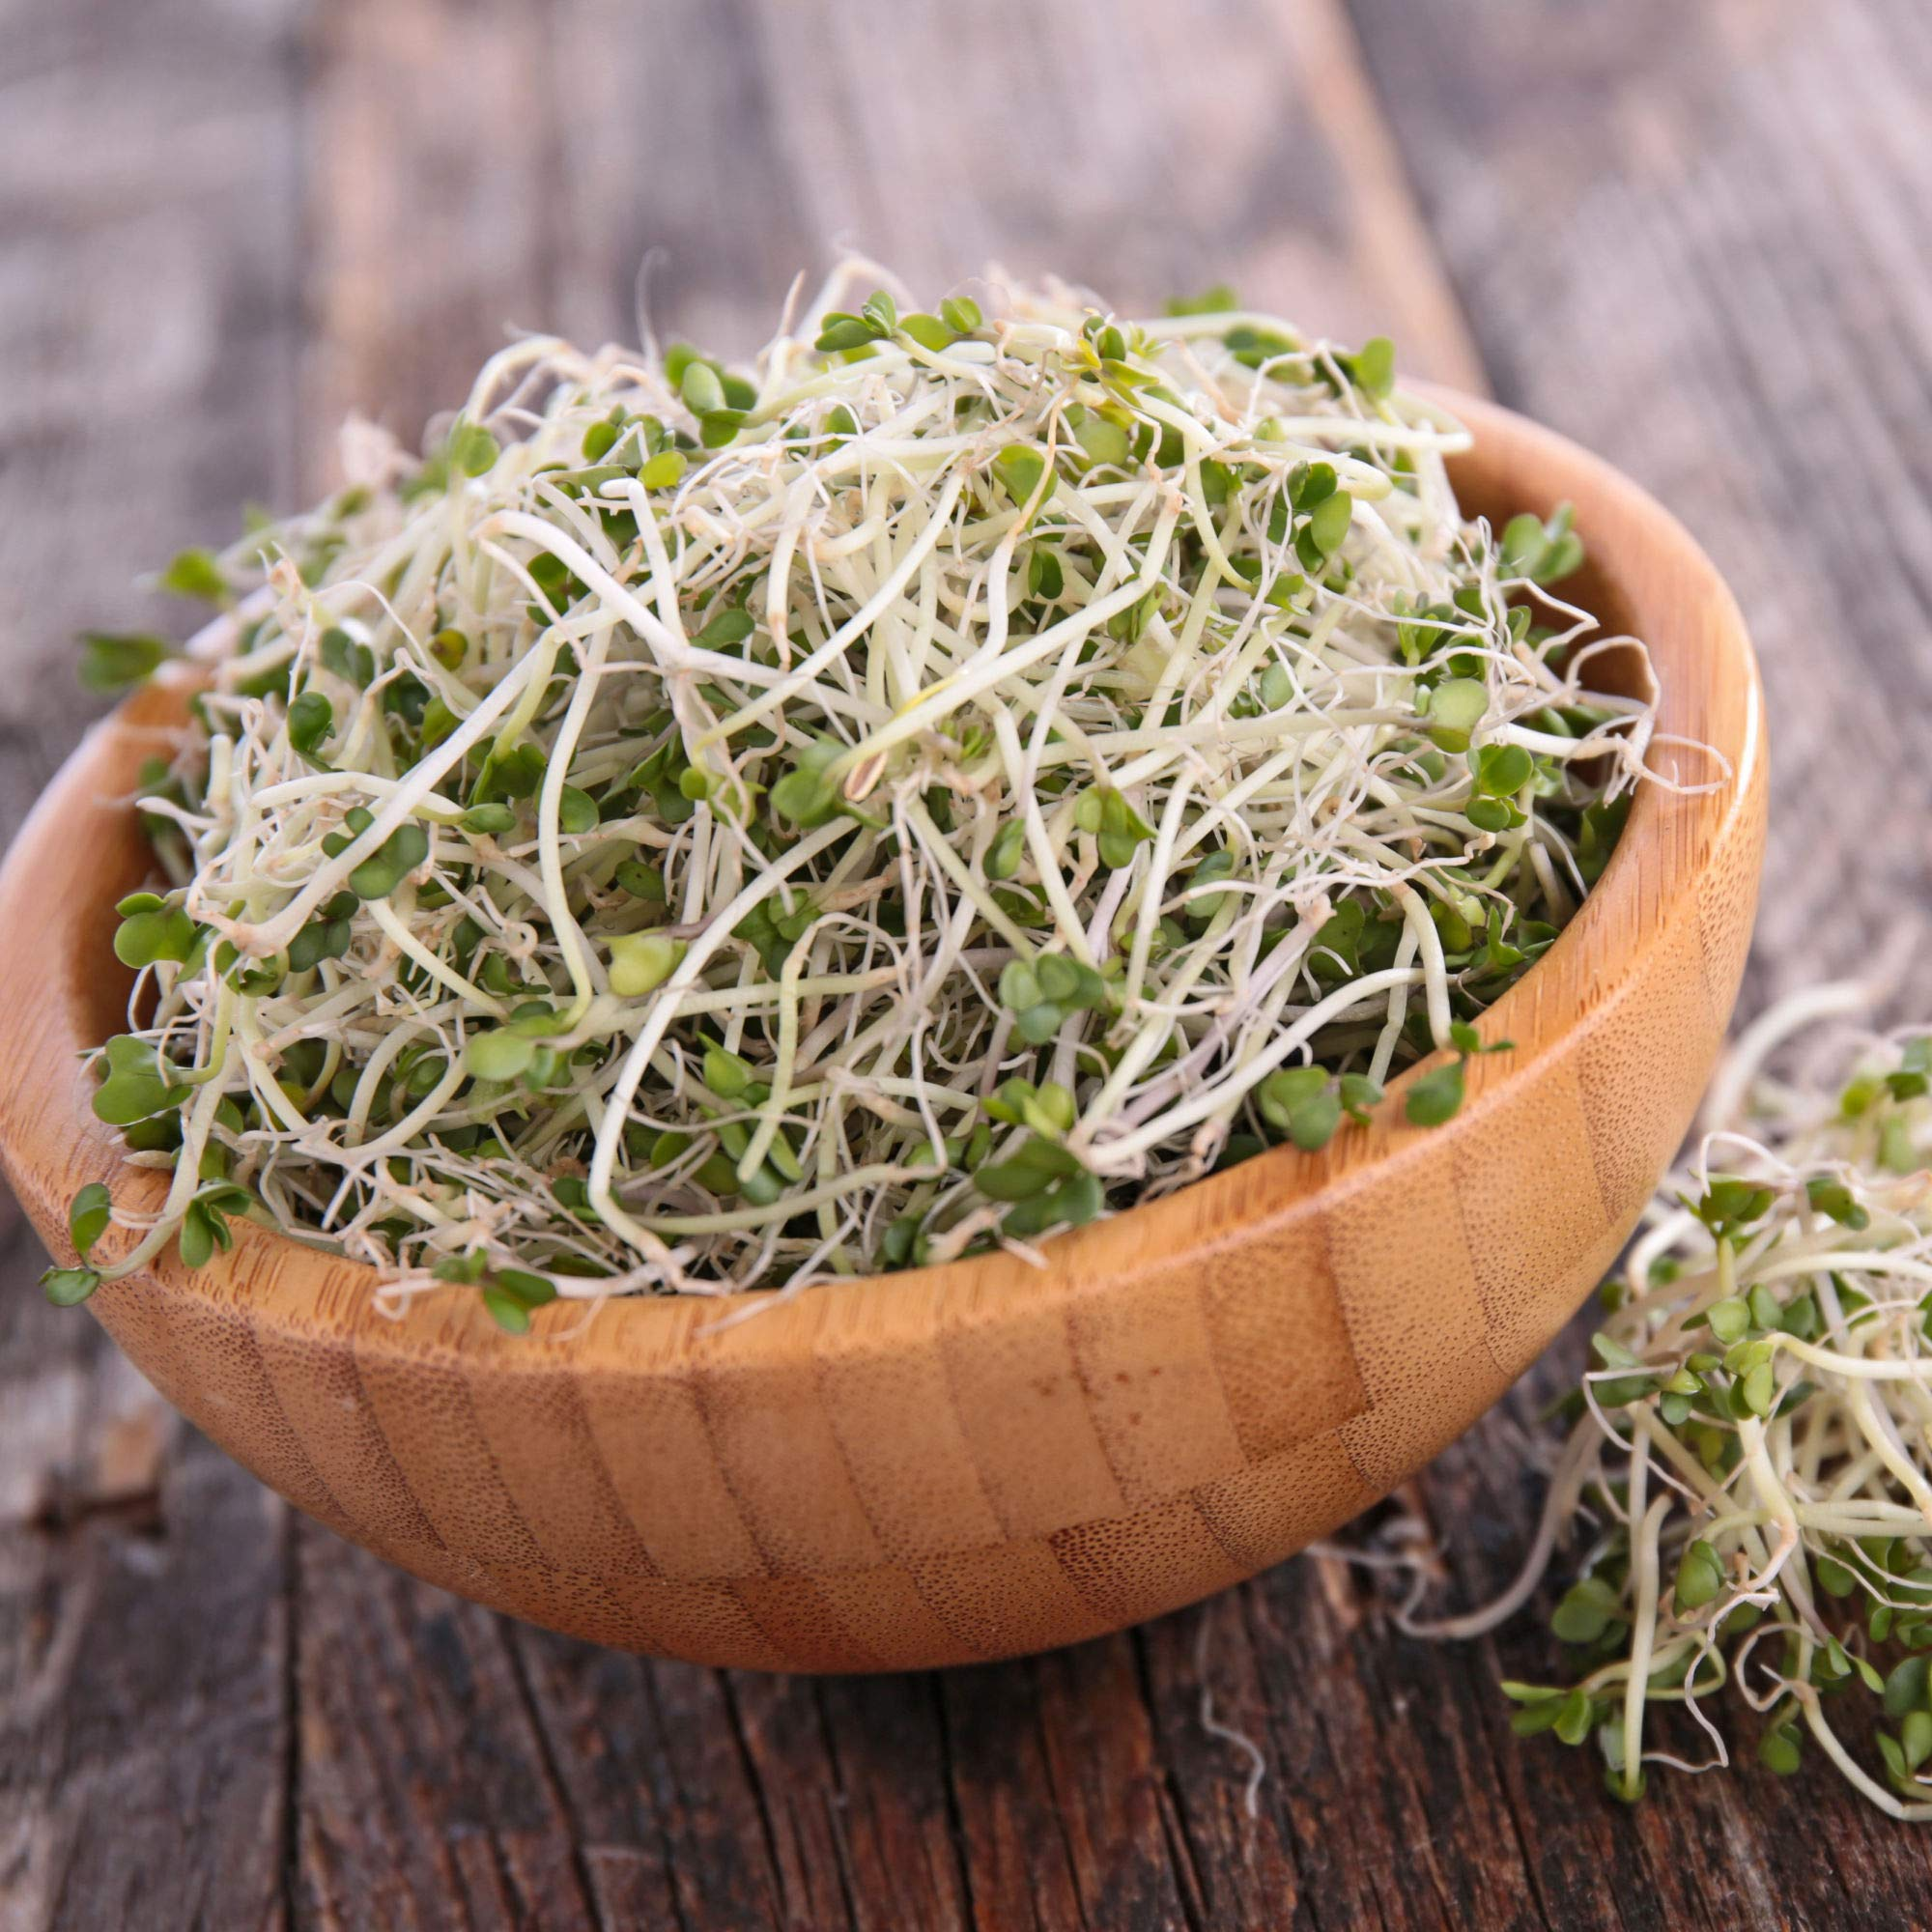 Organic Broccoli Sprouting Seeds By Handy Pantry | 5 Pound Resealable Can | Bulk Non-GMO Broccoli Sprouts Seeds, Contain Sulforaphane by Handy Pantry (Image #3)